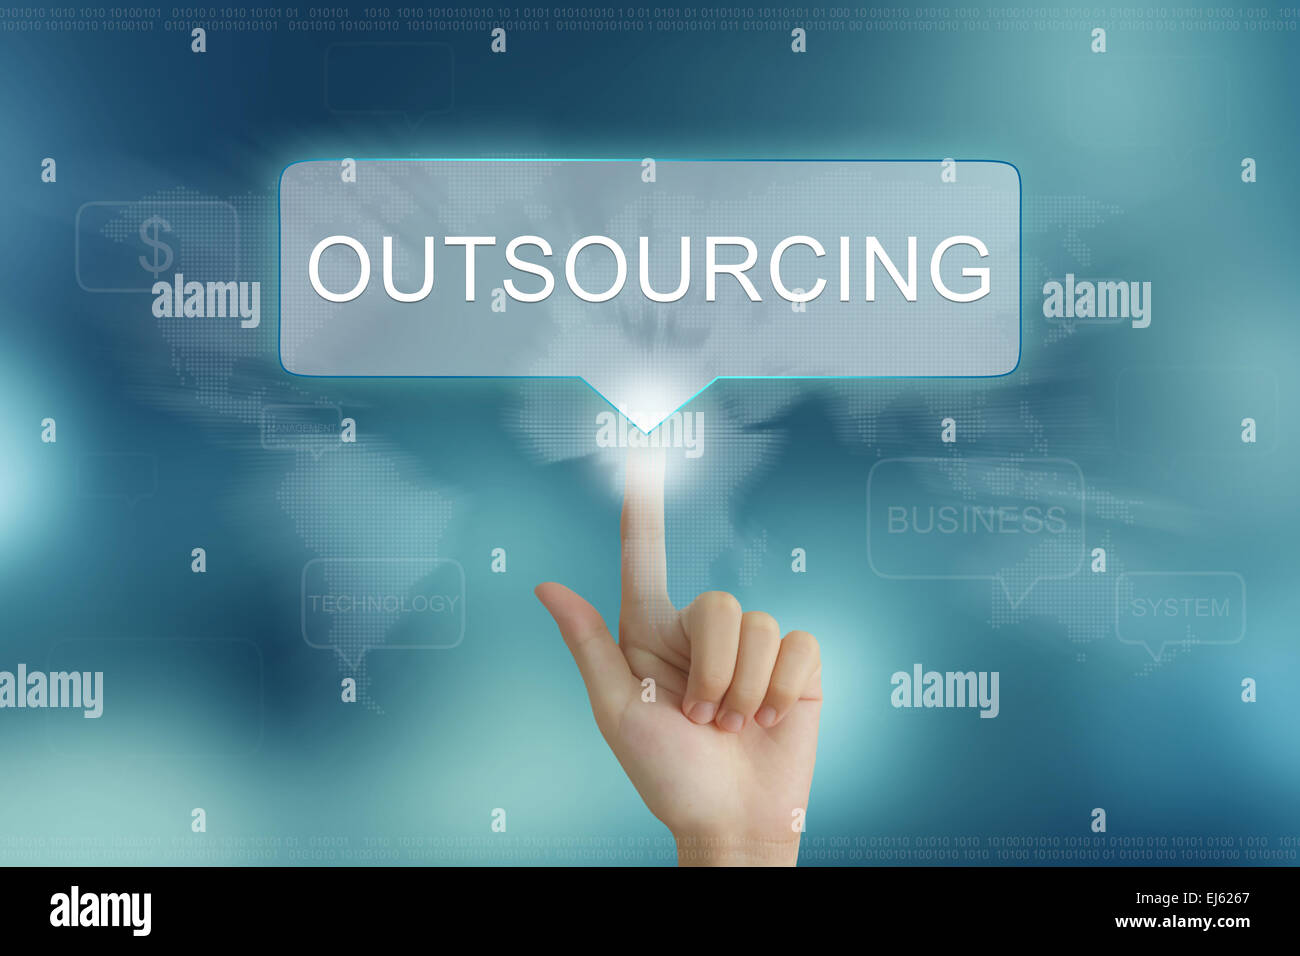 hand pushing on outsourcing balloon text button - Stock Image